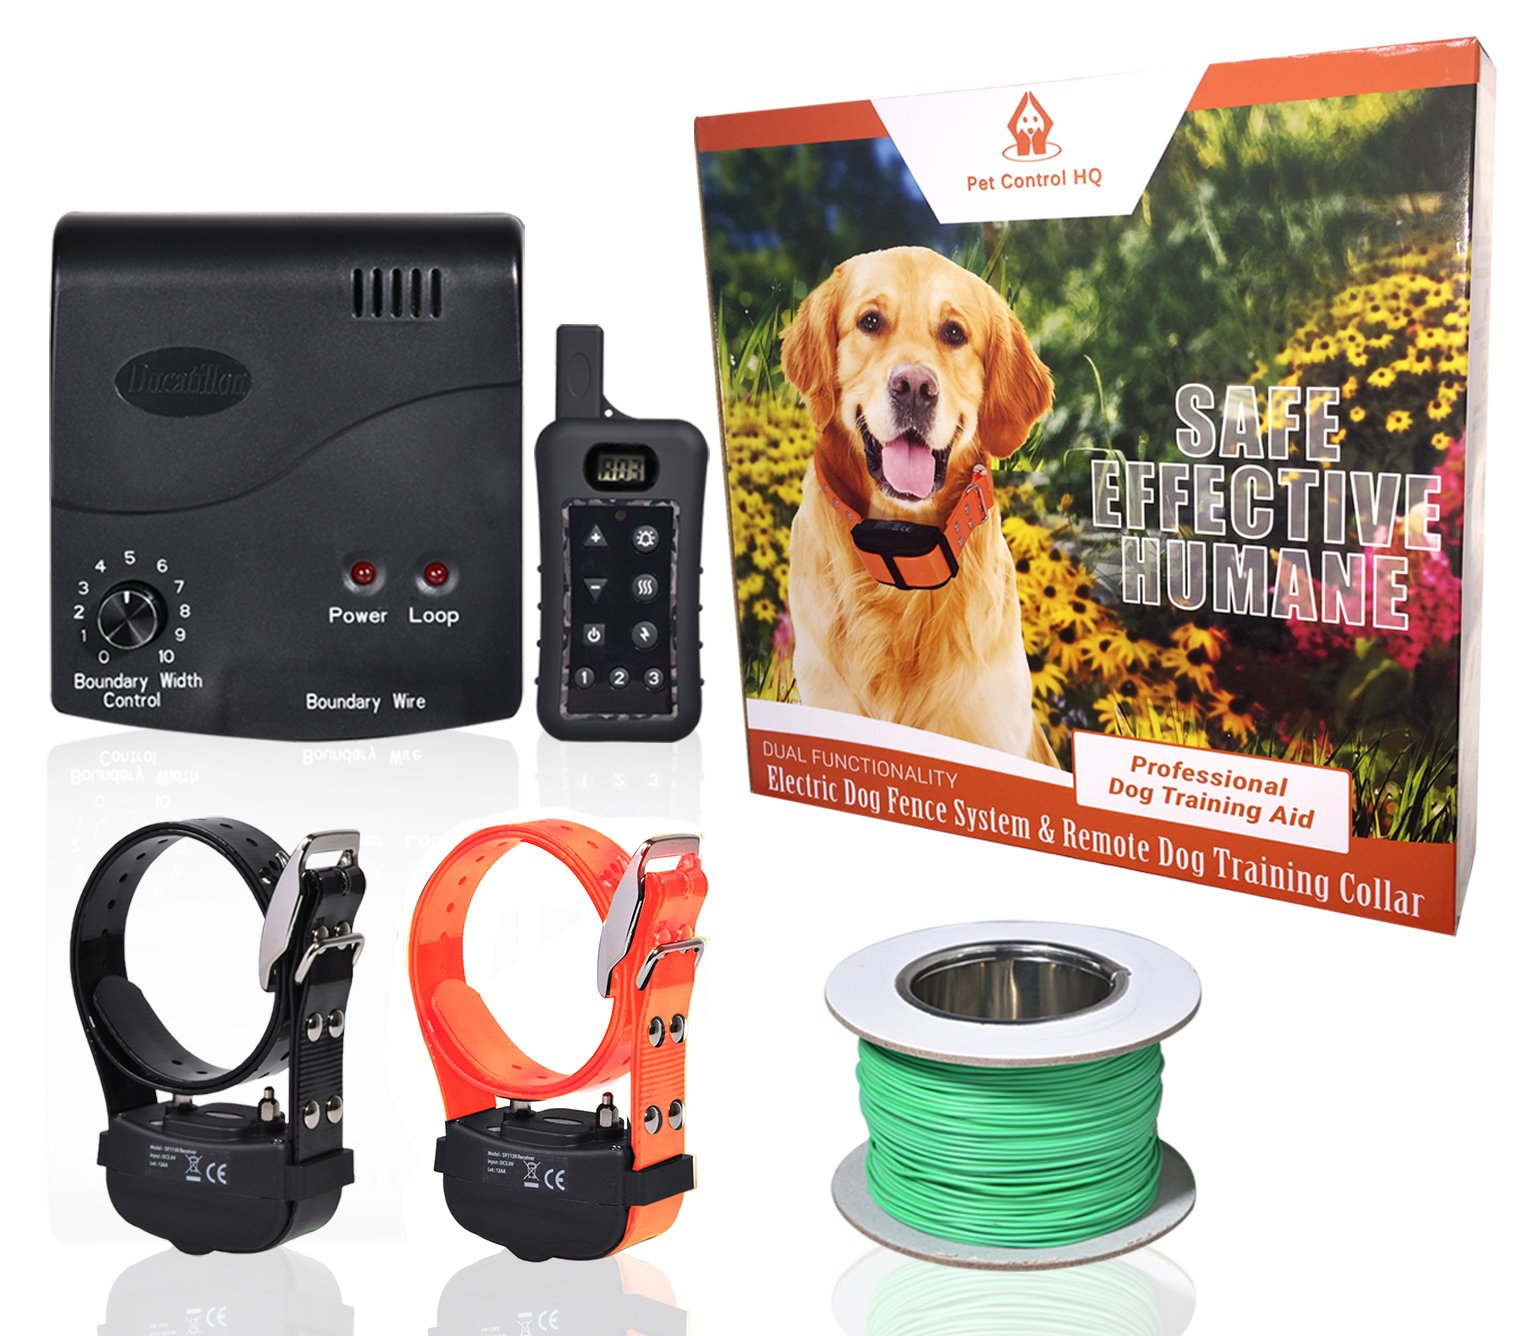 Pet Control HQ | Wireless Electric Fence and Wireless Remote Dog Training Shock Collar System | Work Together to Safely Contain and Train Your Dog | Includes Electric Fence and Shock Collar System by Pet Control HQ